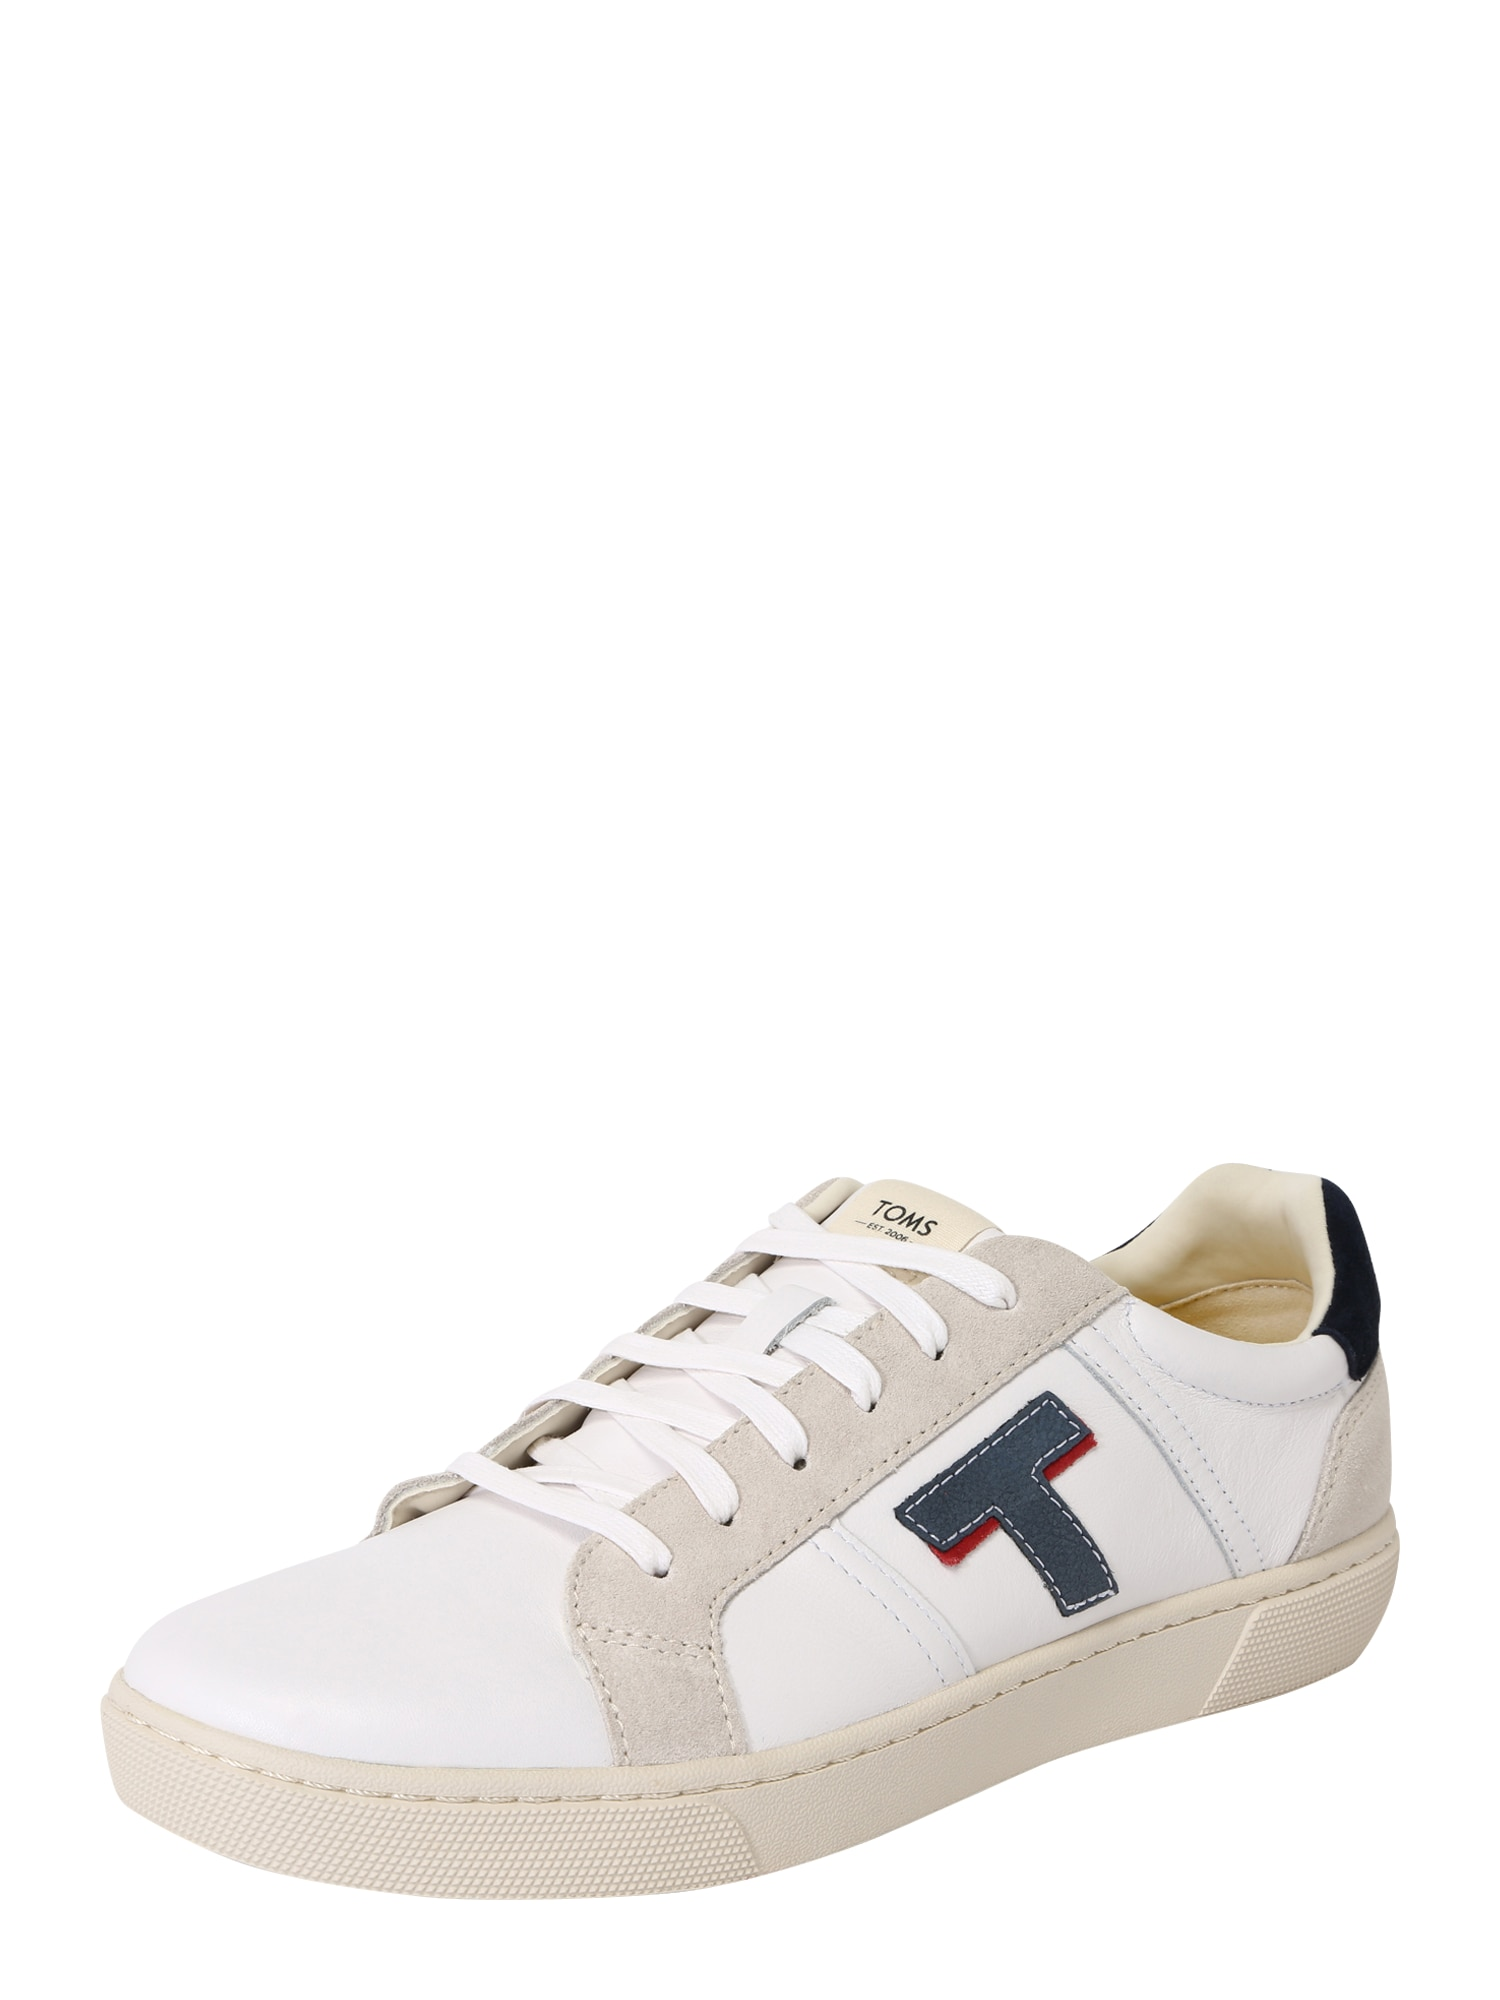 TOMS Tenisky 'LEANDRO'  offwhite